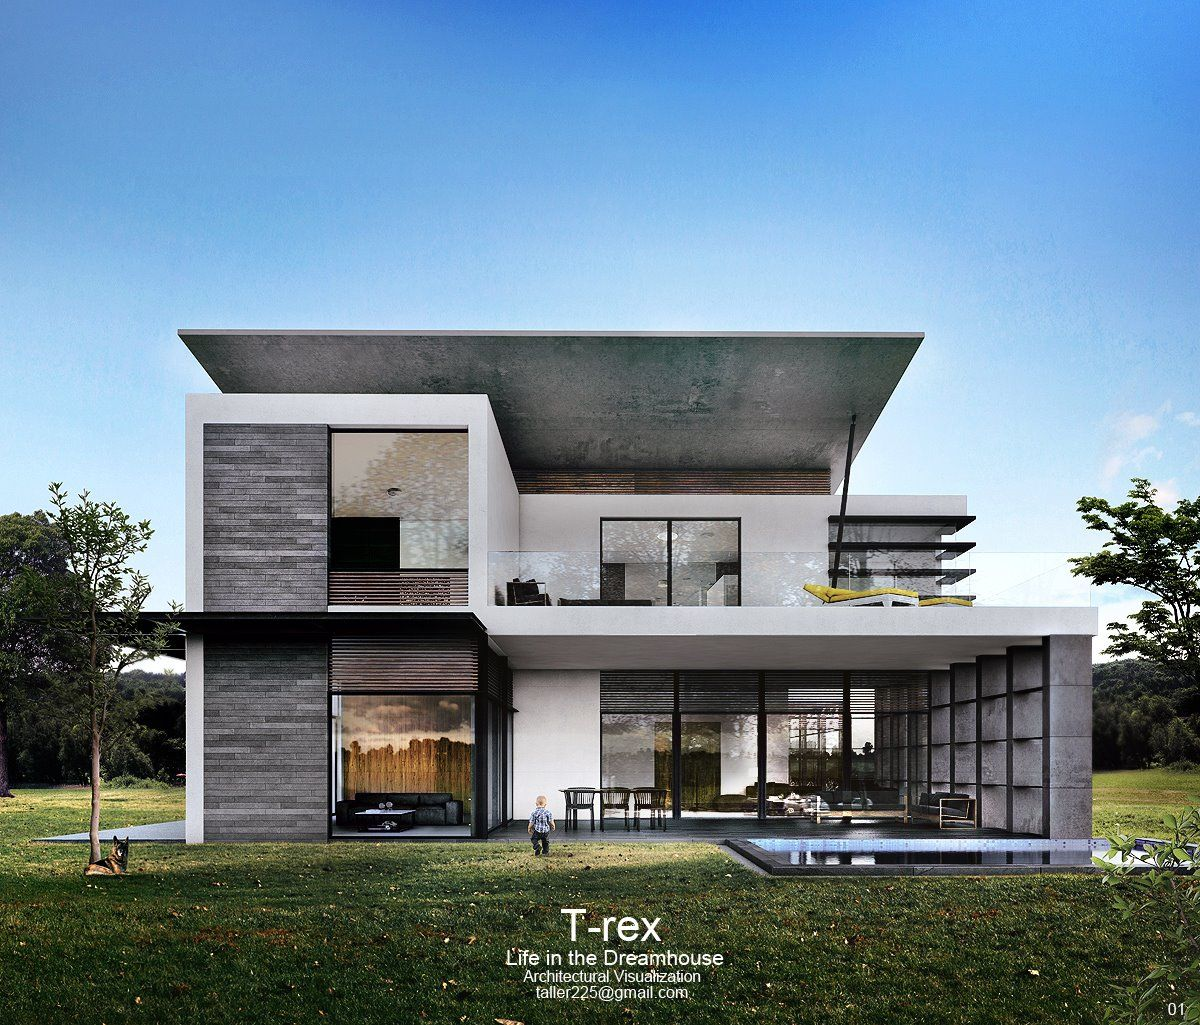 https://www.facebook.com/pages/T-rex-architects/419563454765828?sk=timeline